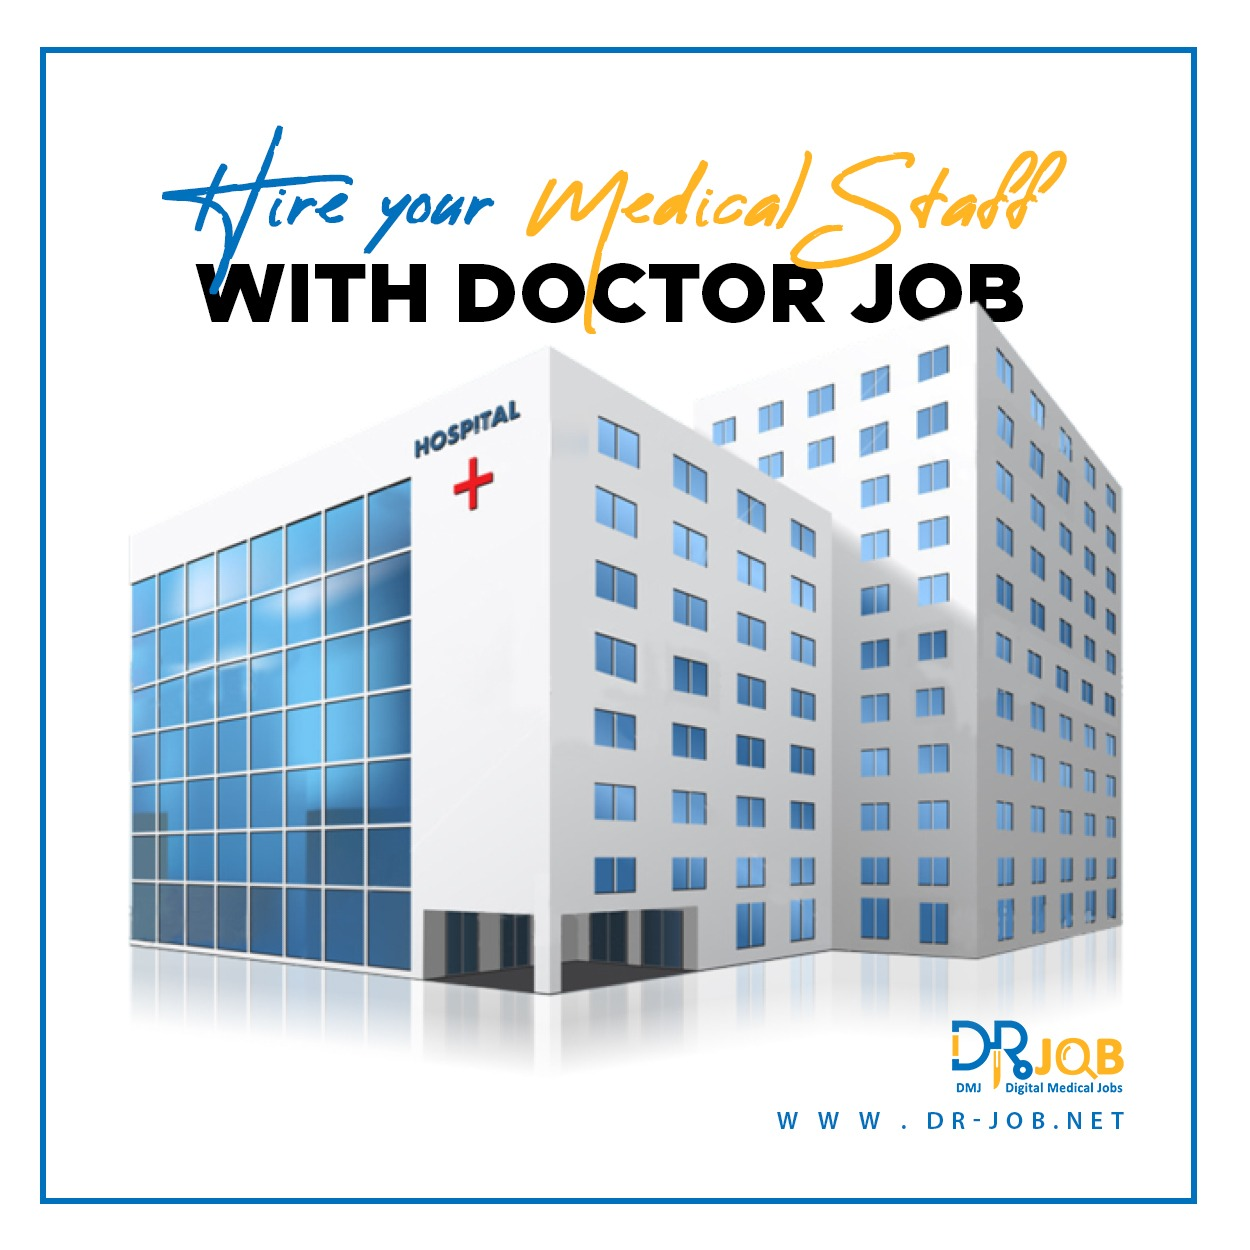 Hire your medical staff with Dr. Job